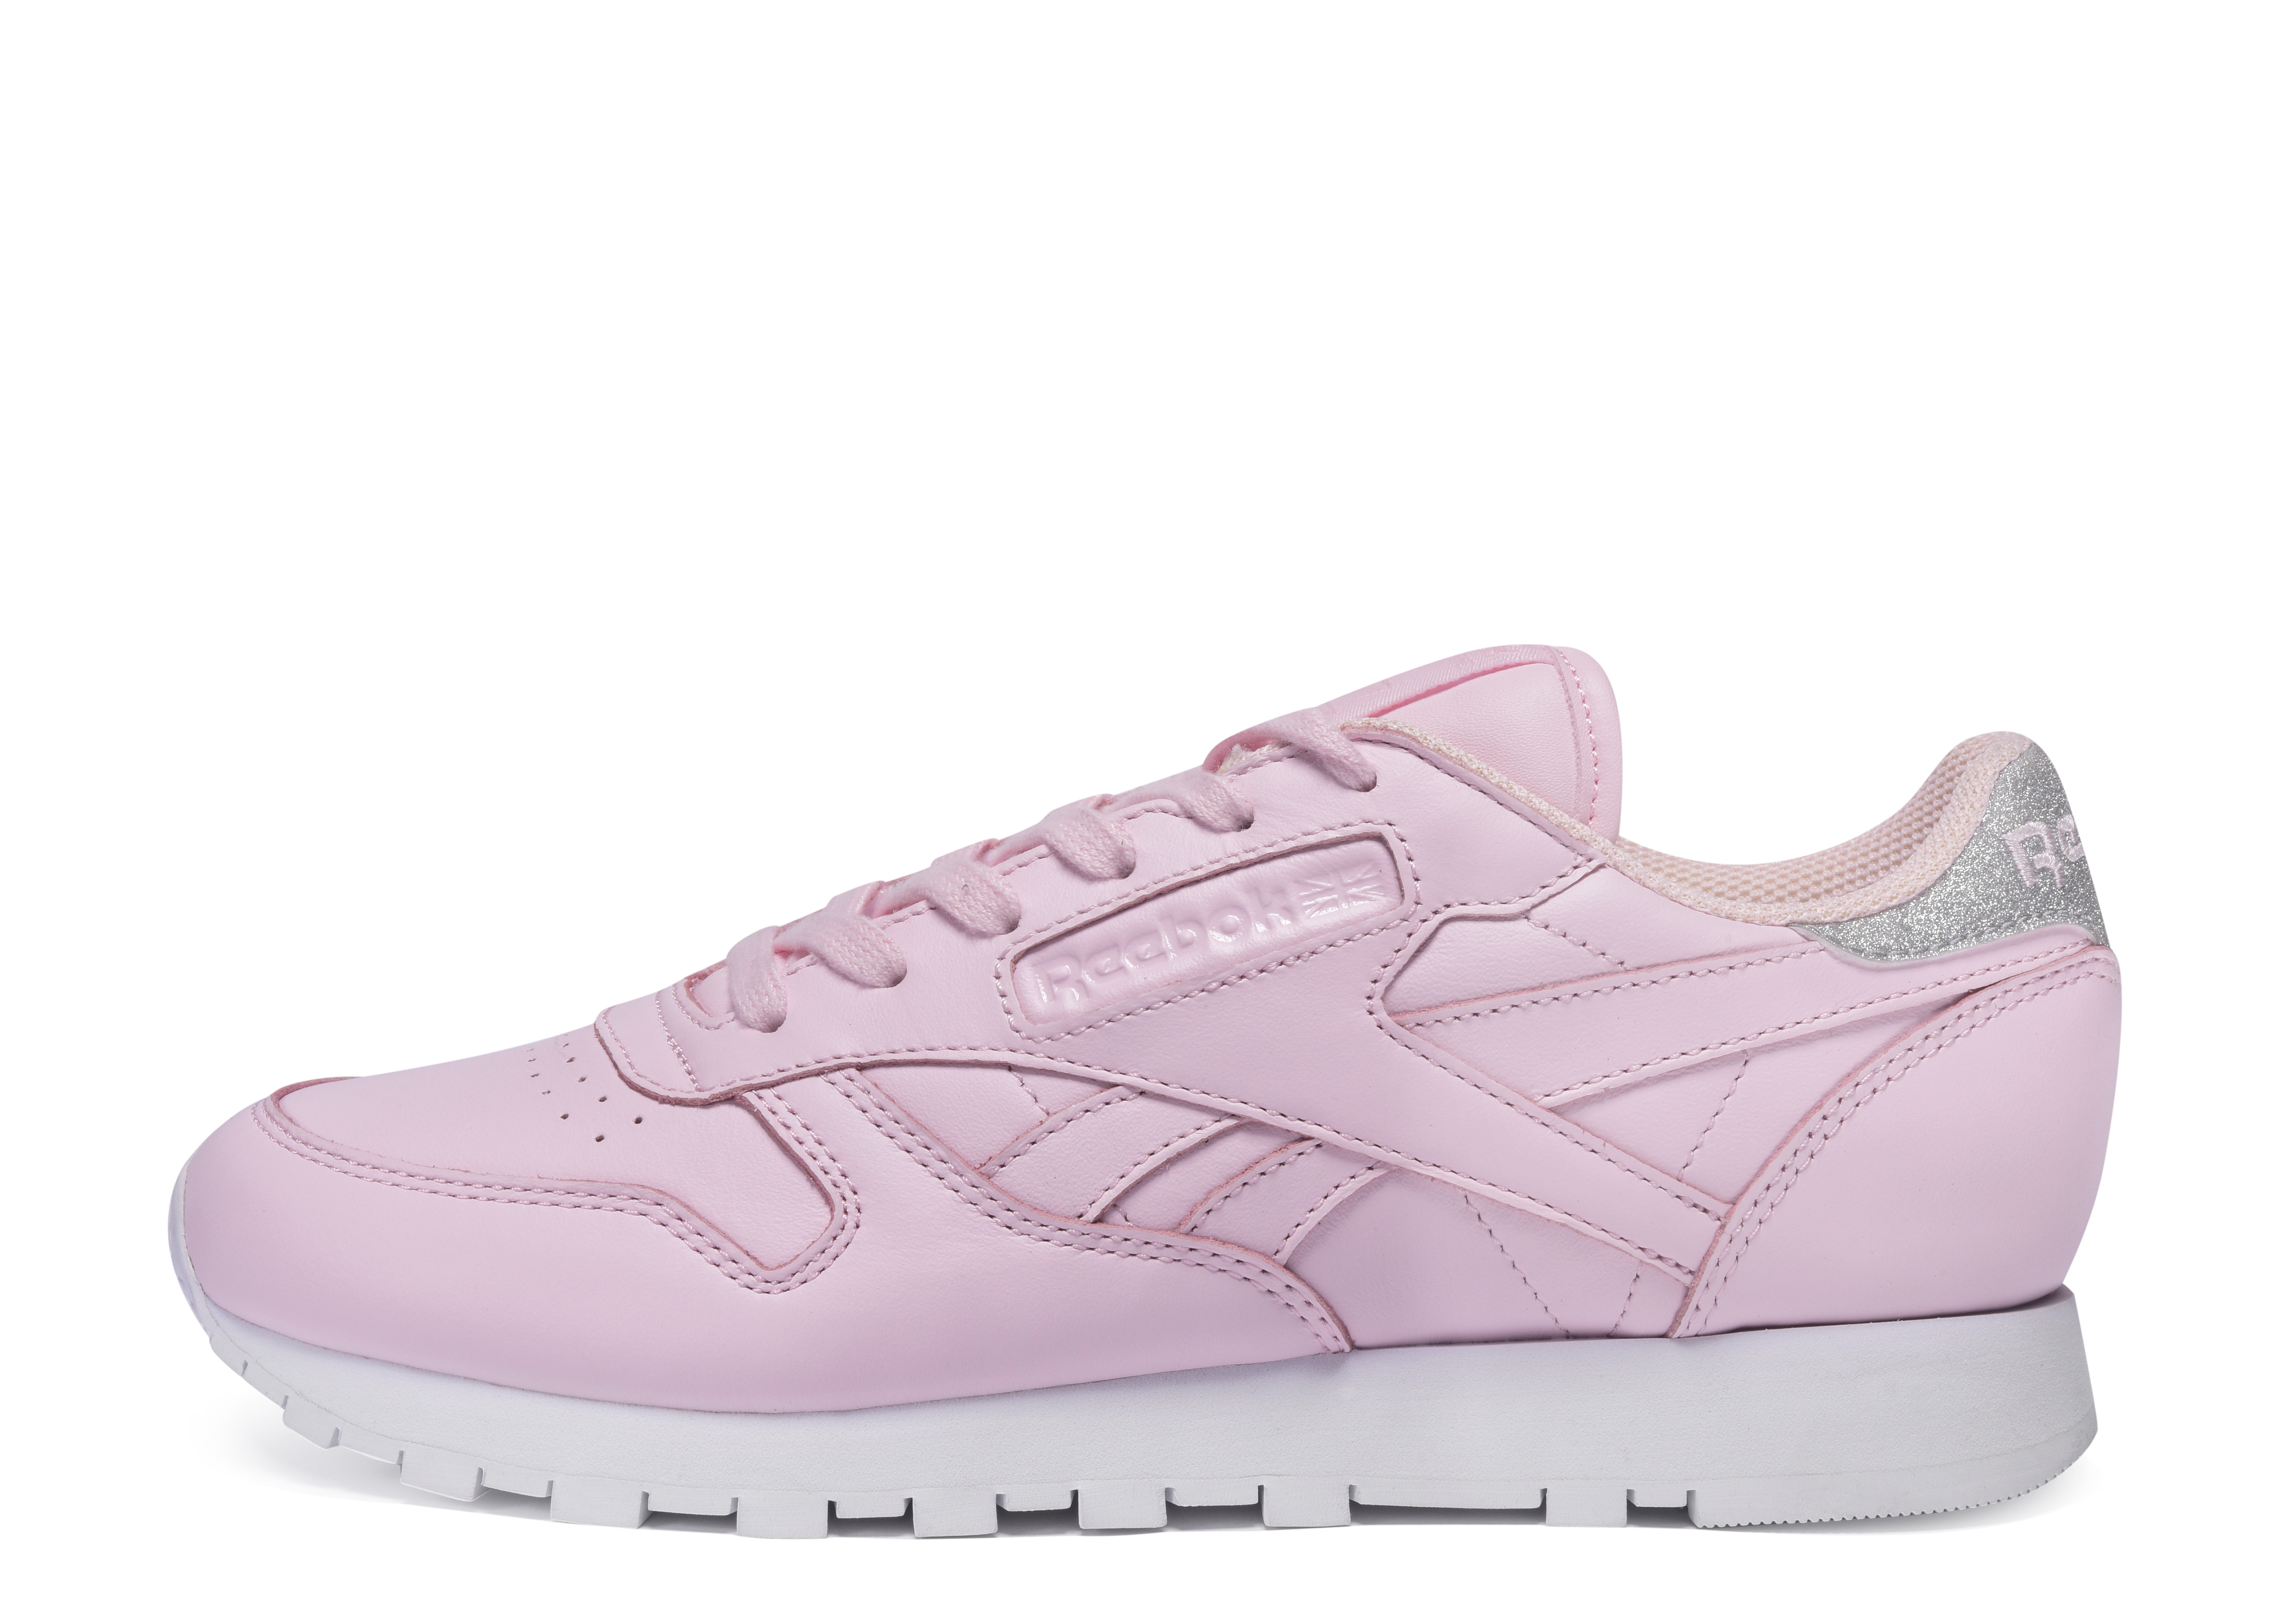 Reebok Classic Leather Diamond Porcelain Pink Silver